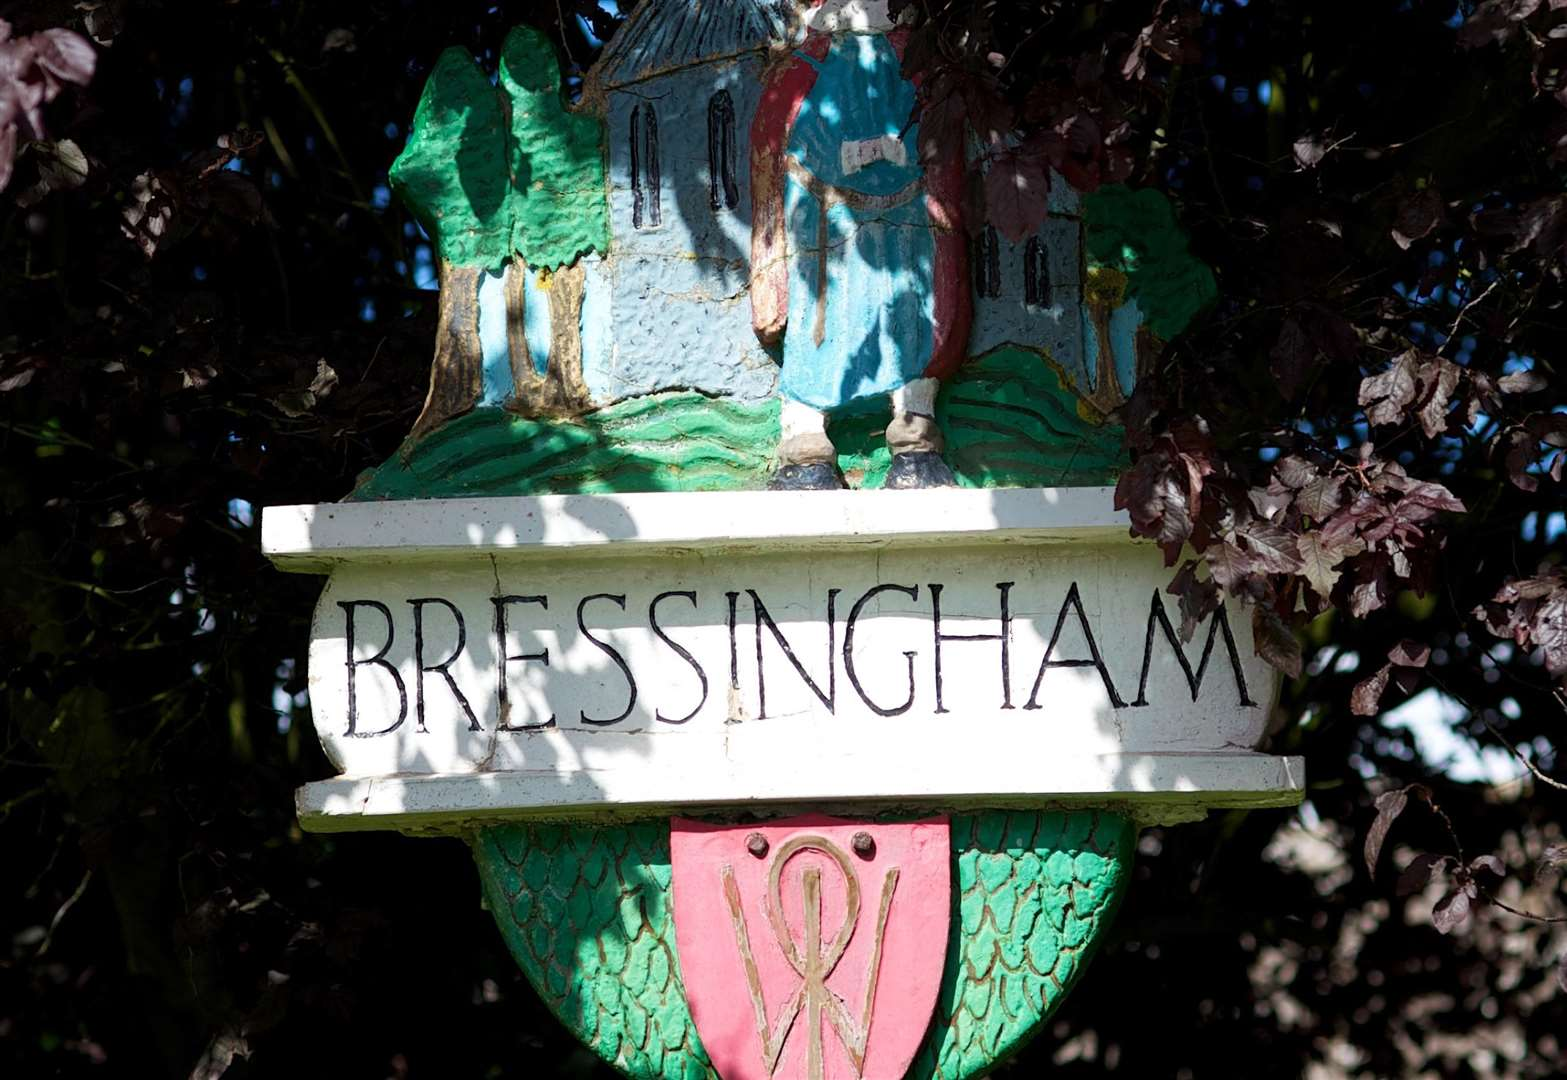 Man charged with string of offences following collision and carjacking in Bressingham